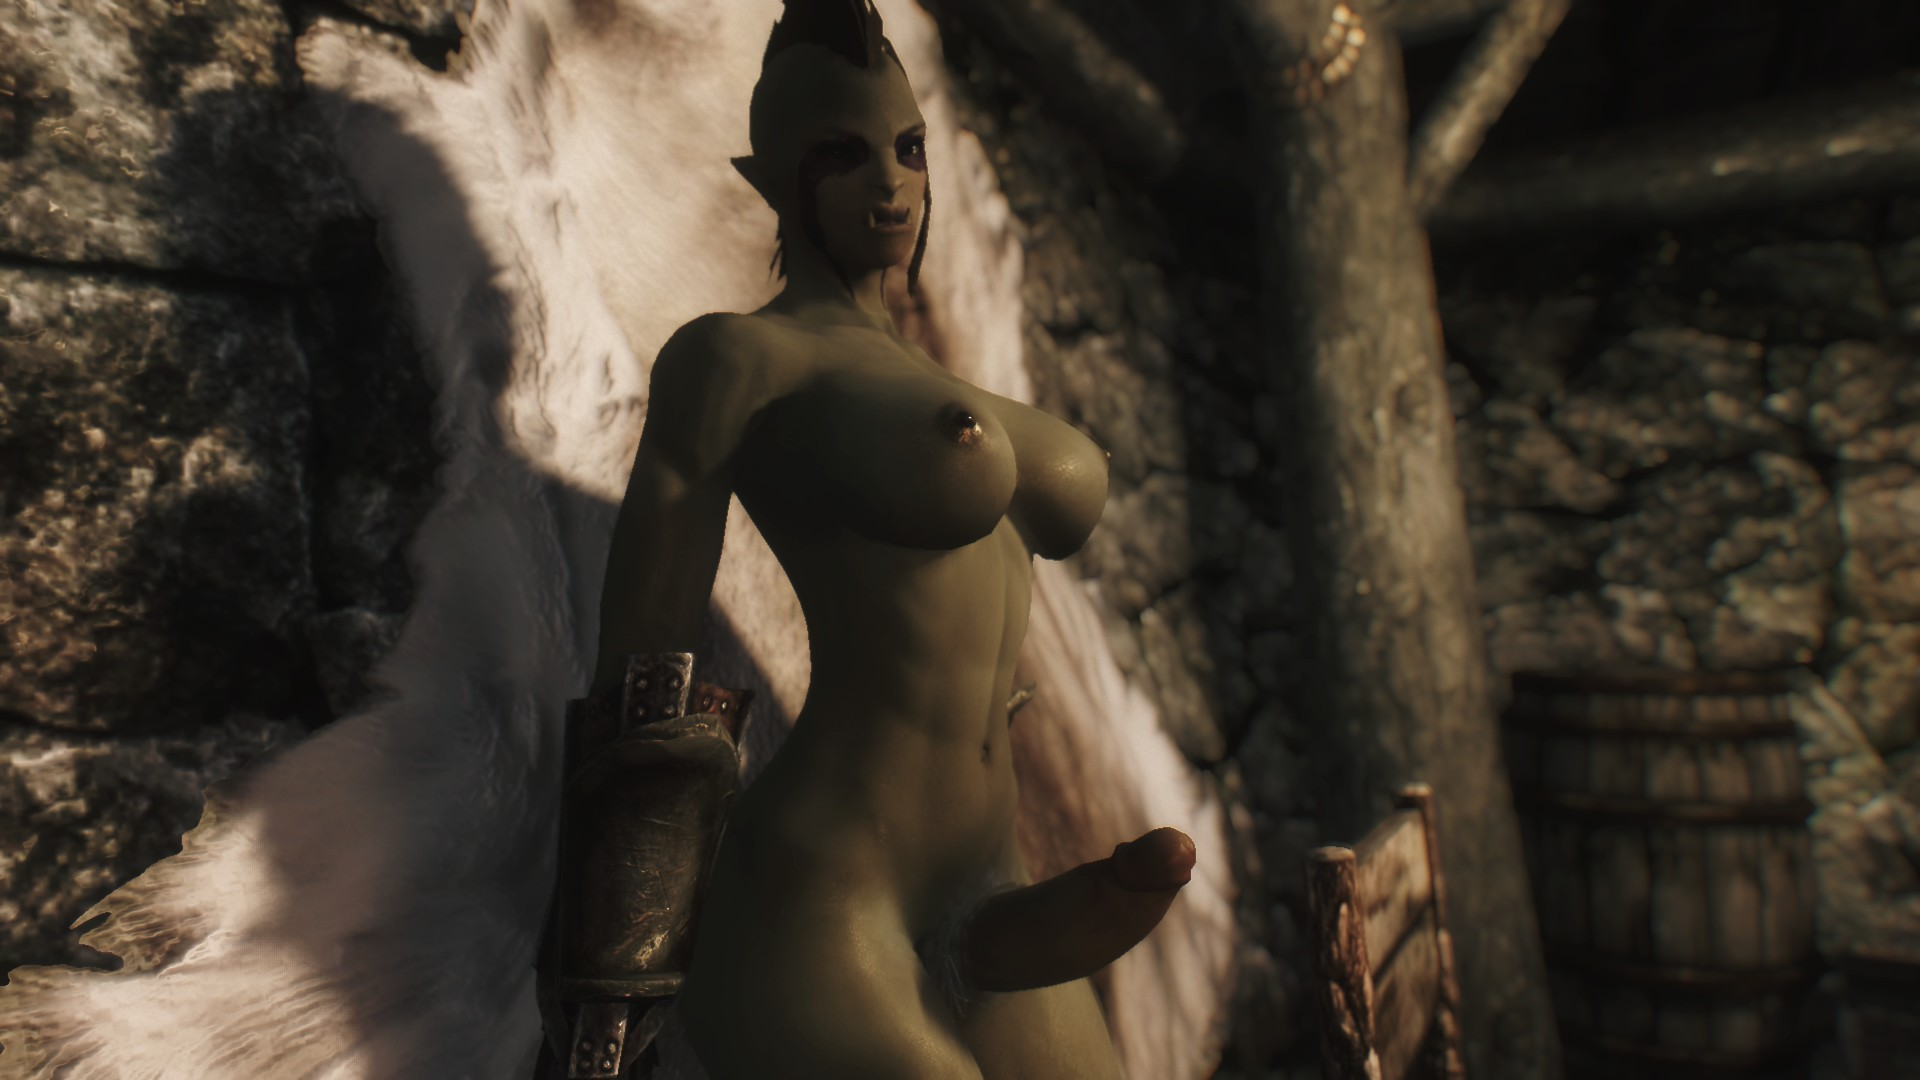 The elder scrolls female porn softcore scenes